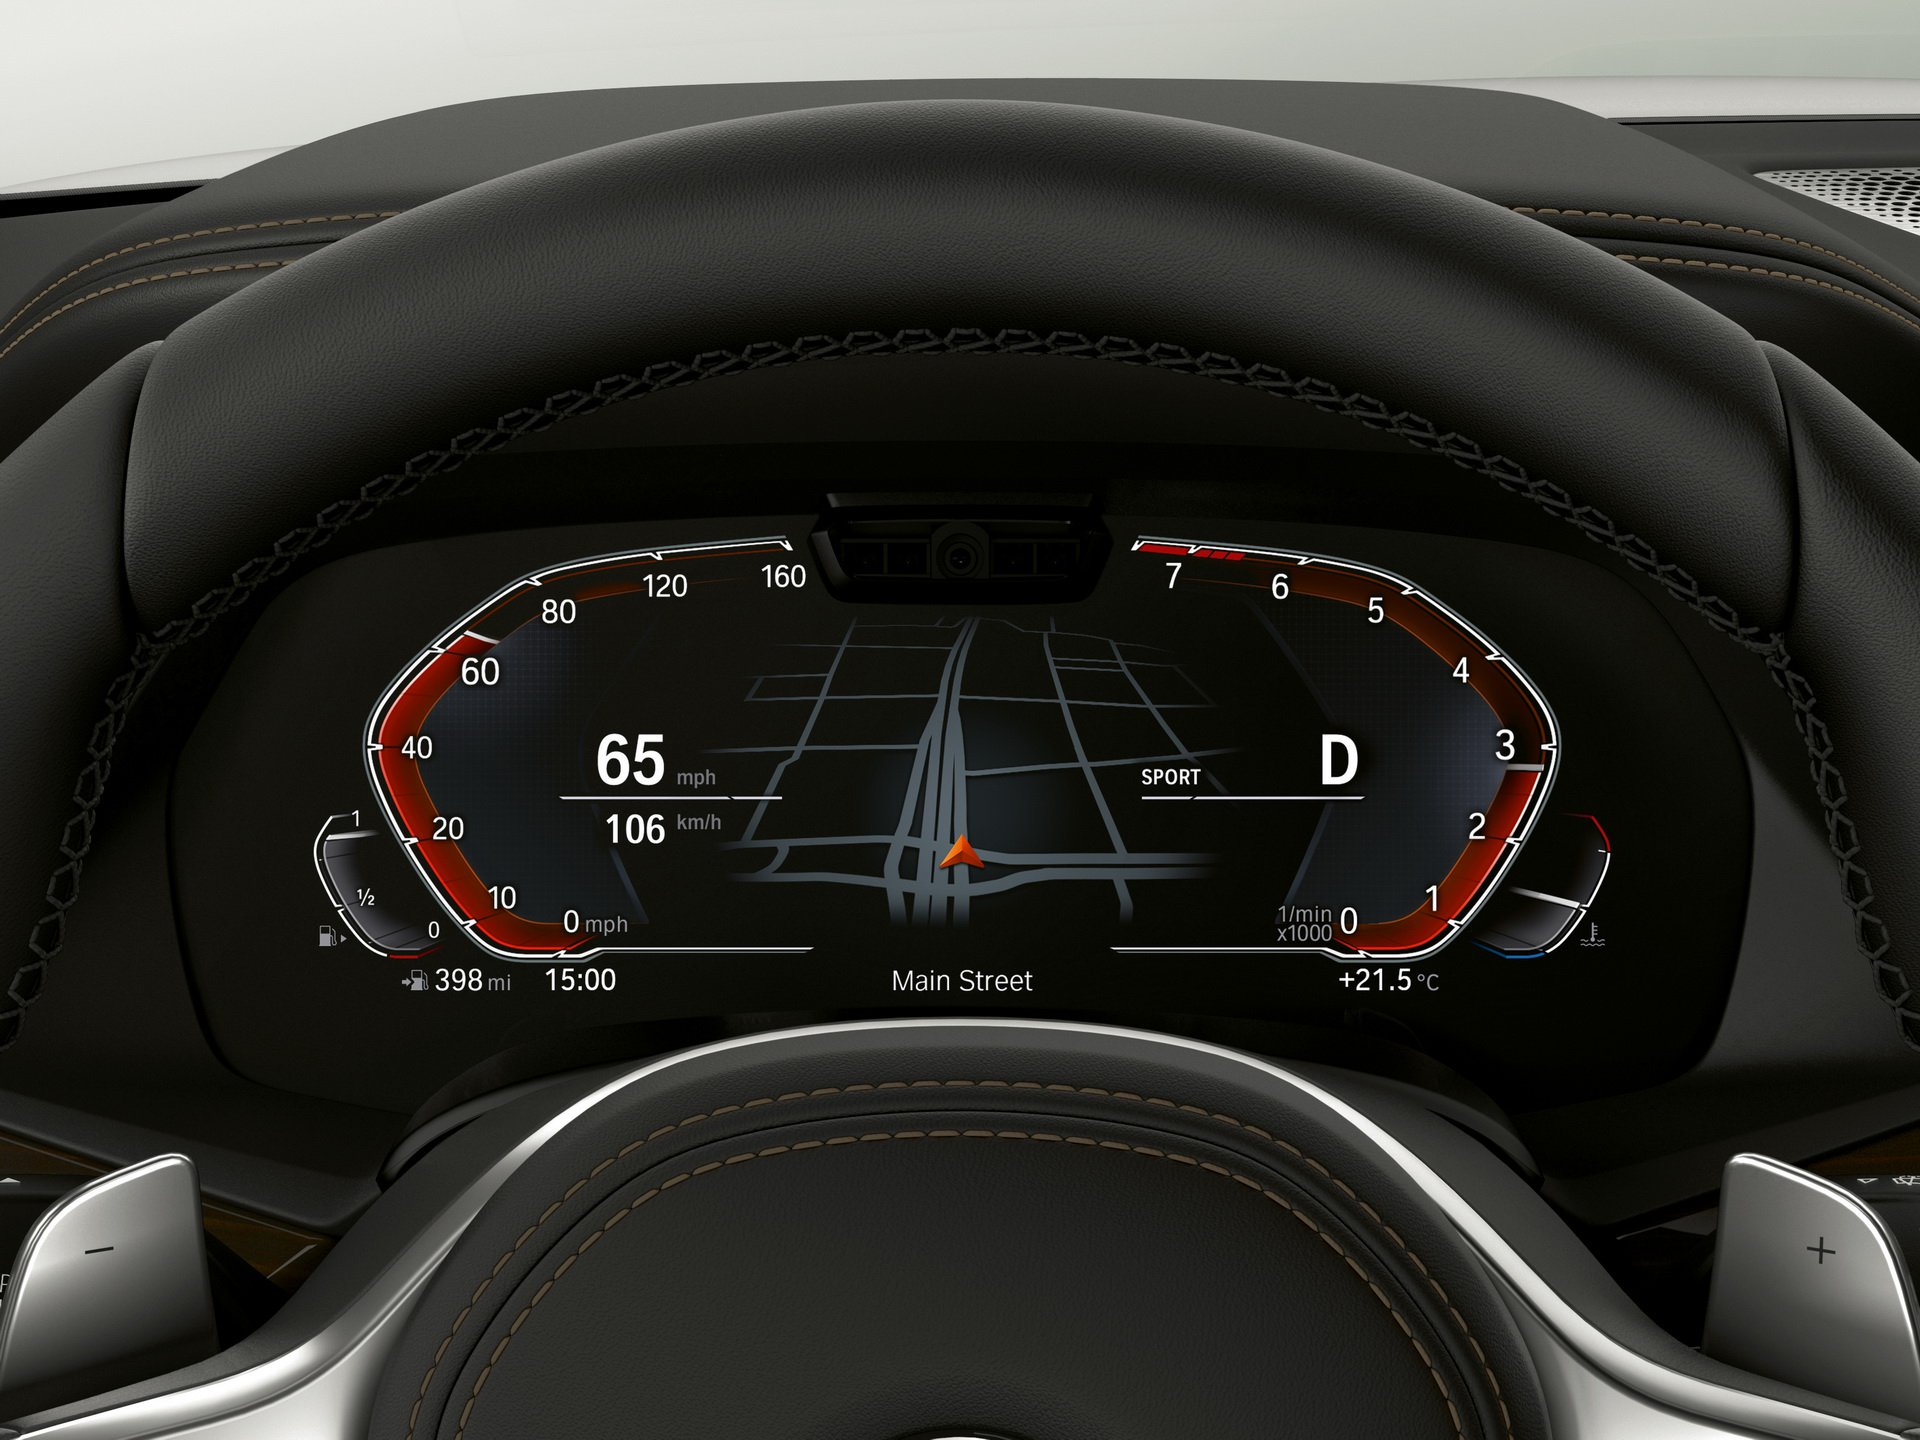 BMW Digital Cockpit (13)